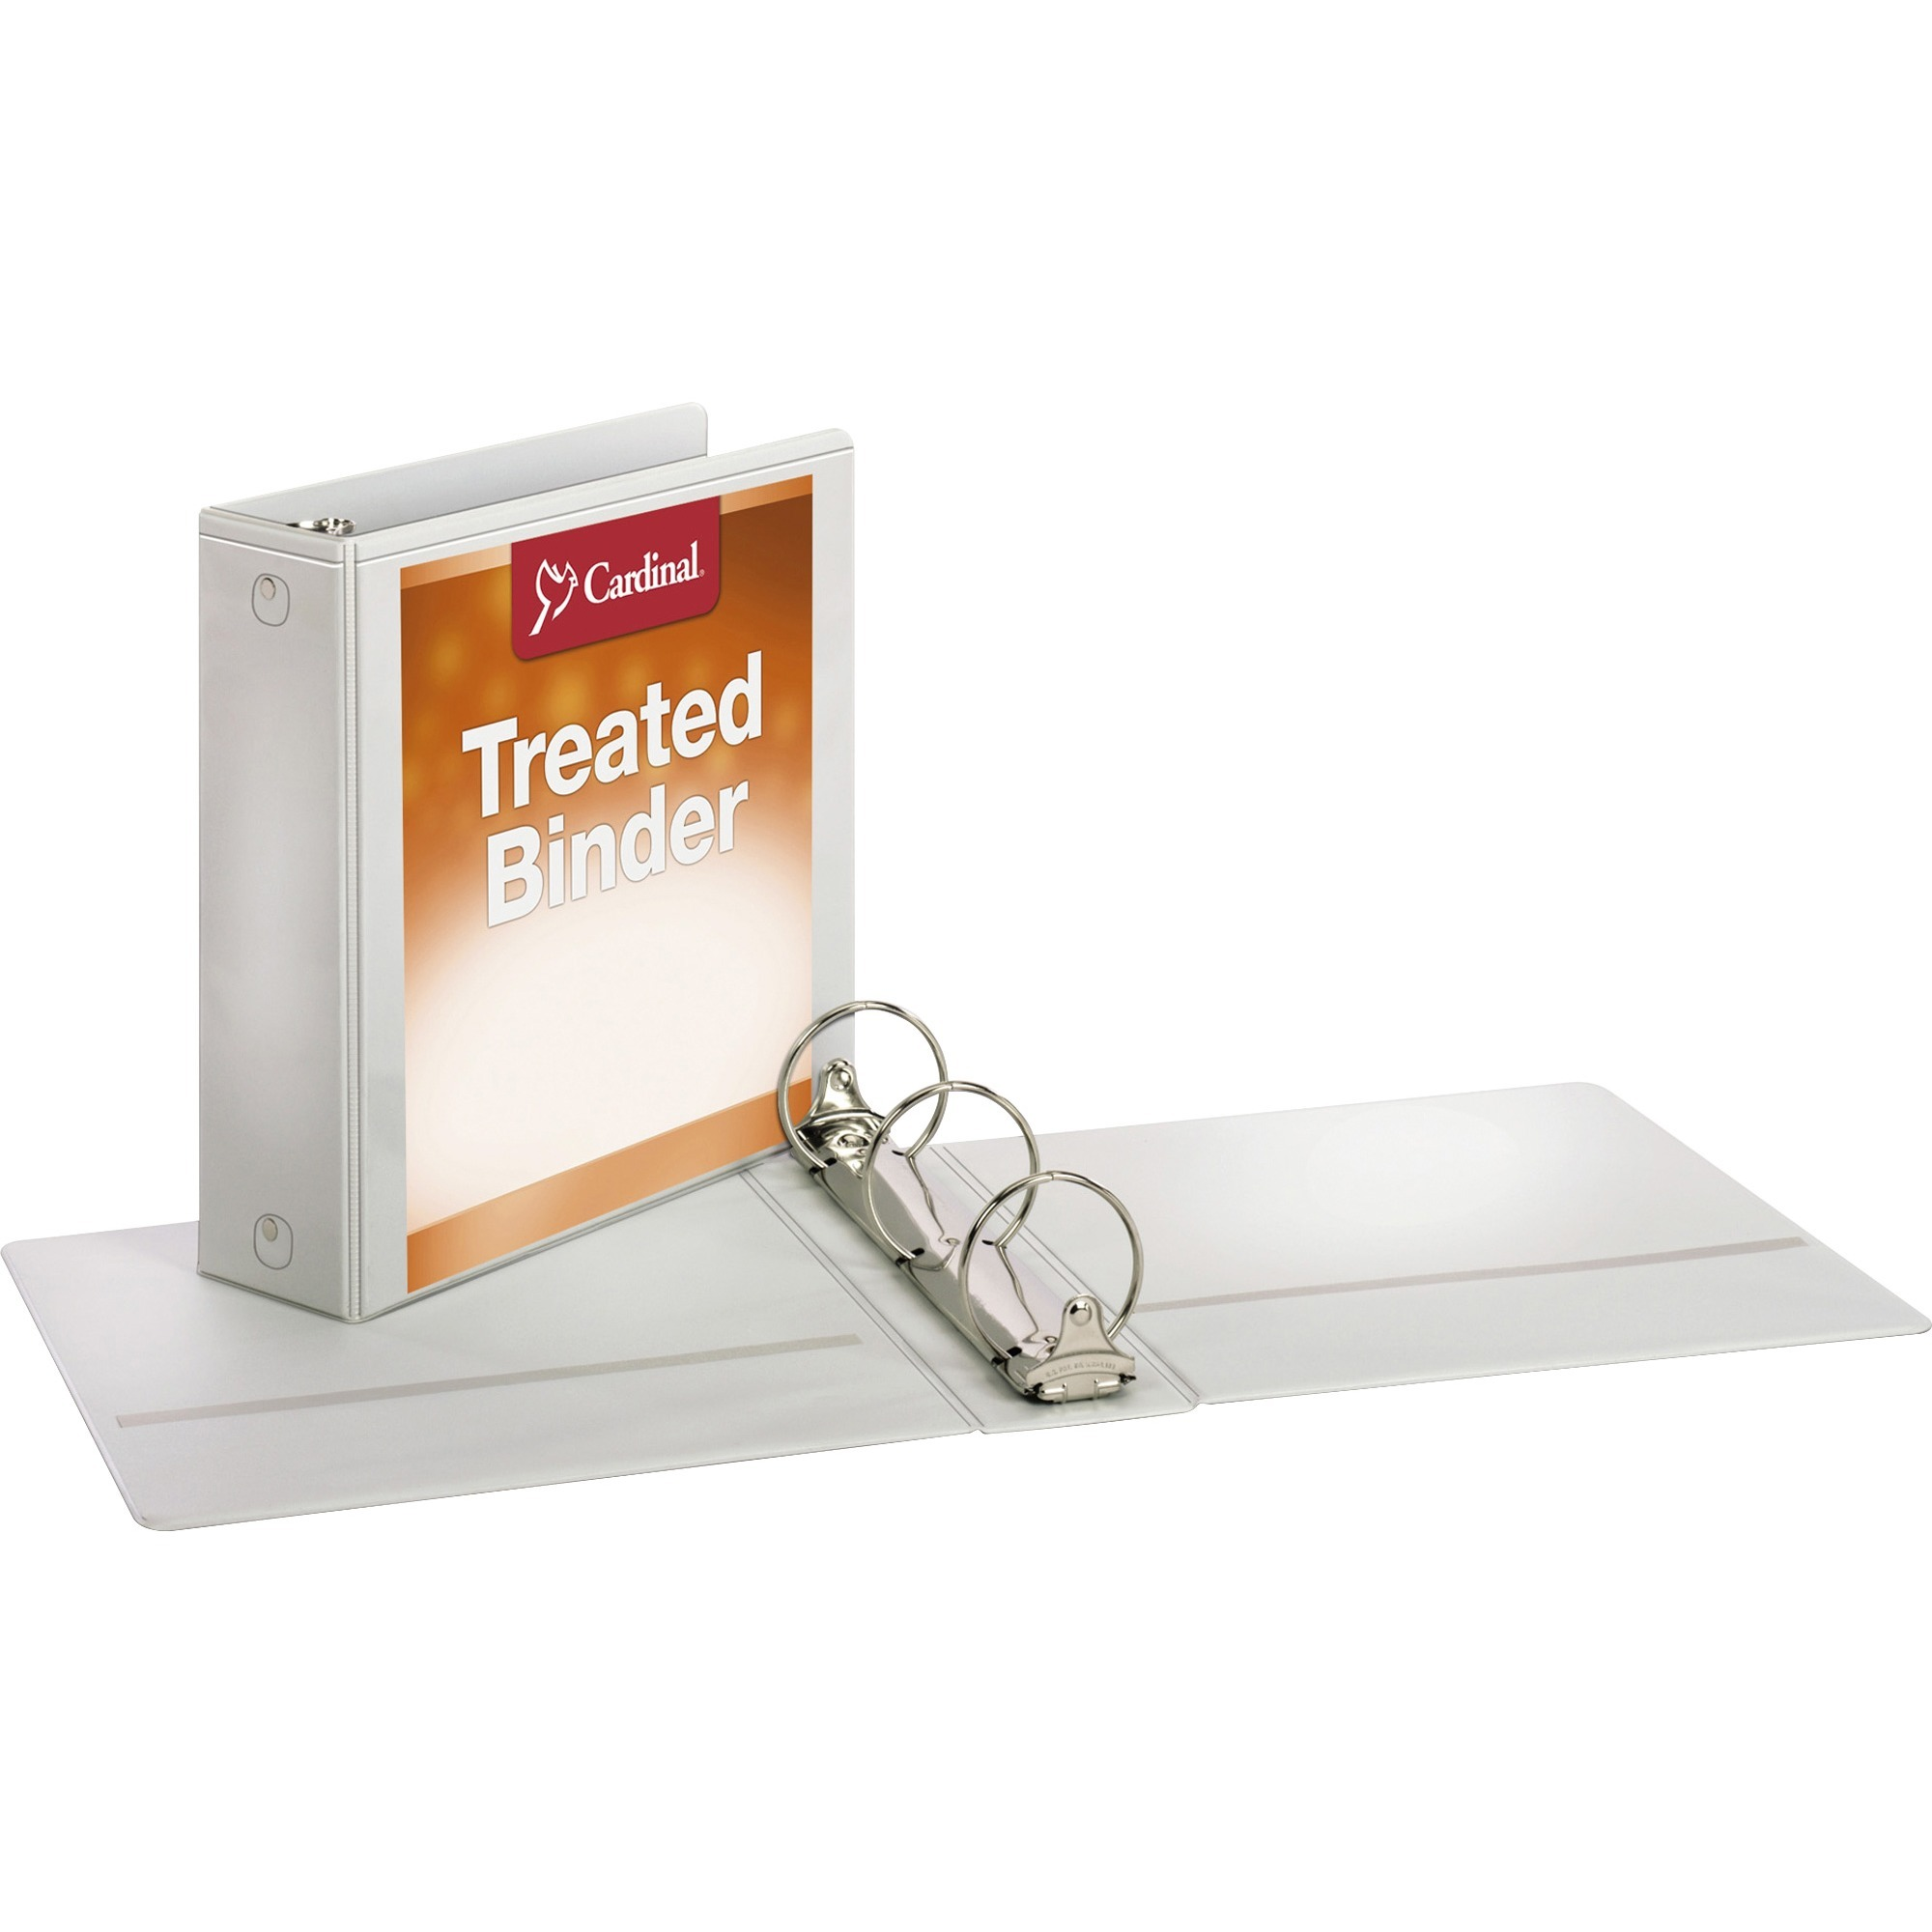 """Cardinal Treated Binder ClearVue Locking Round Ring Binder, 3"""" Cap, 11 x 8 1 2, White by TOPS Products"""